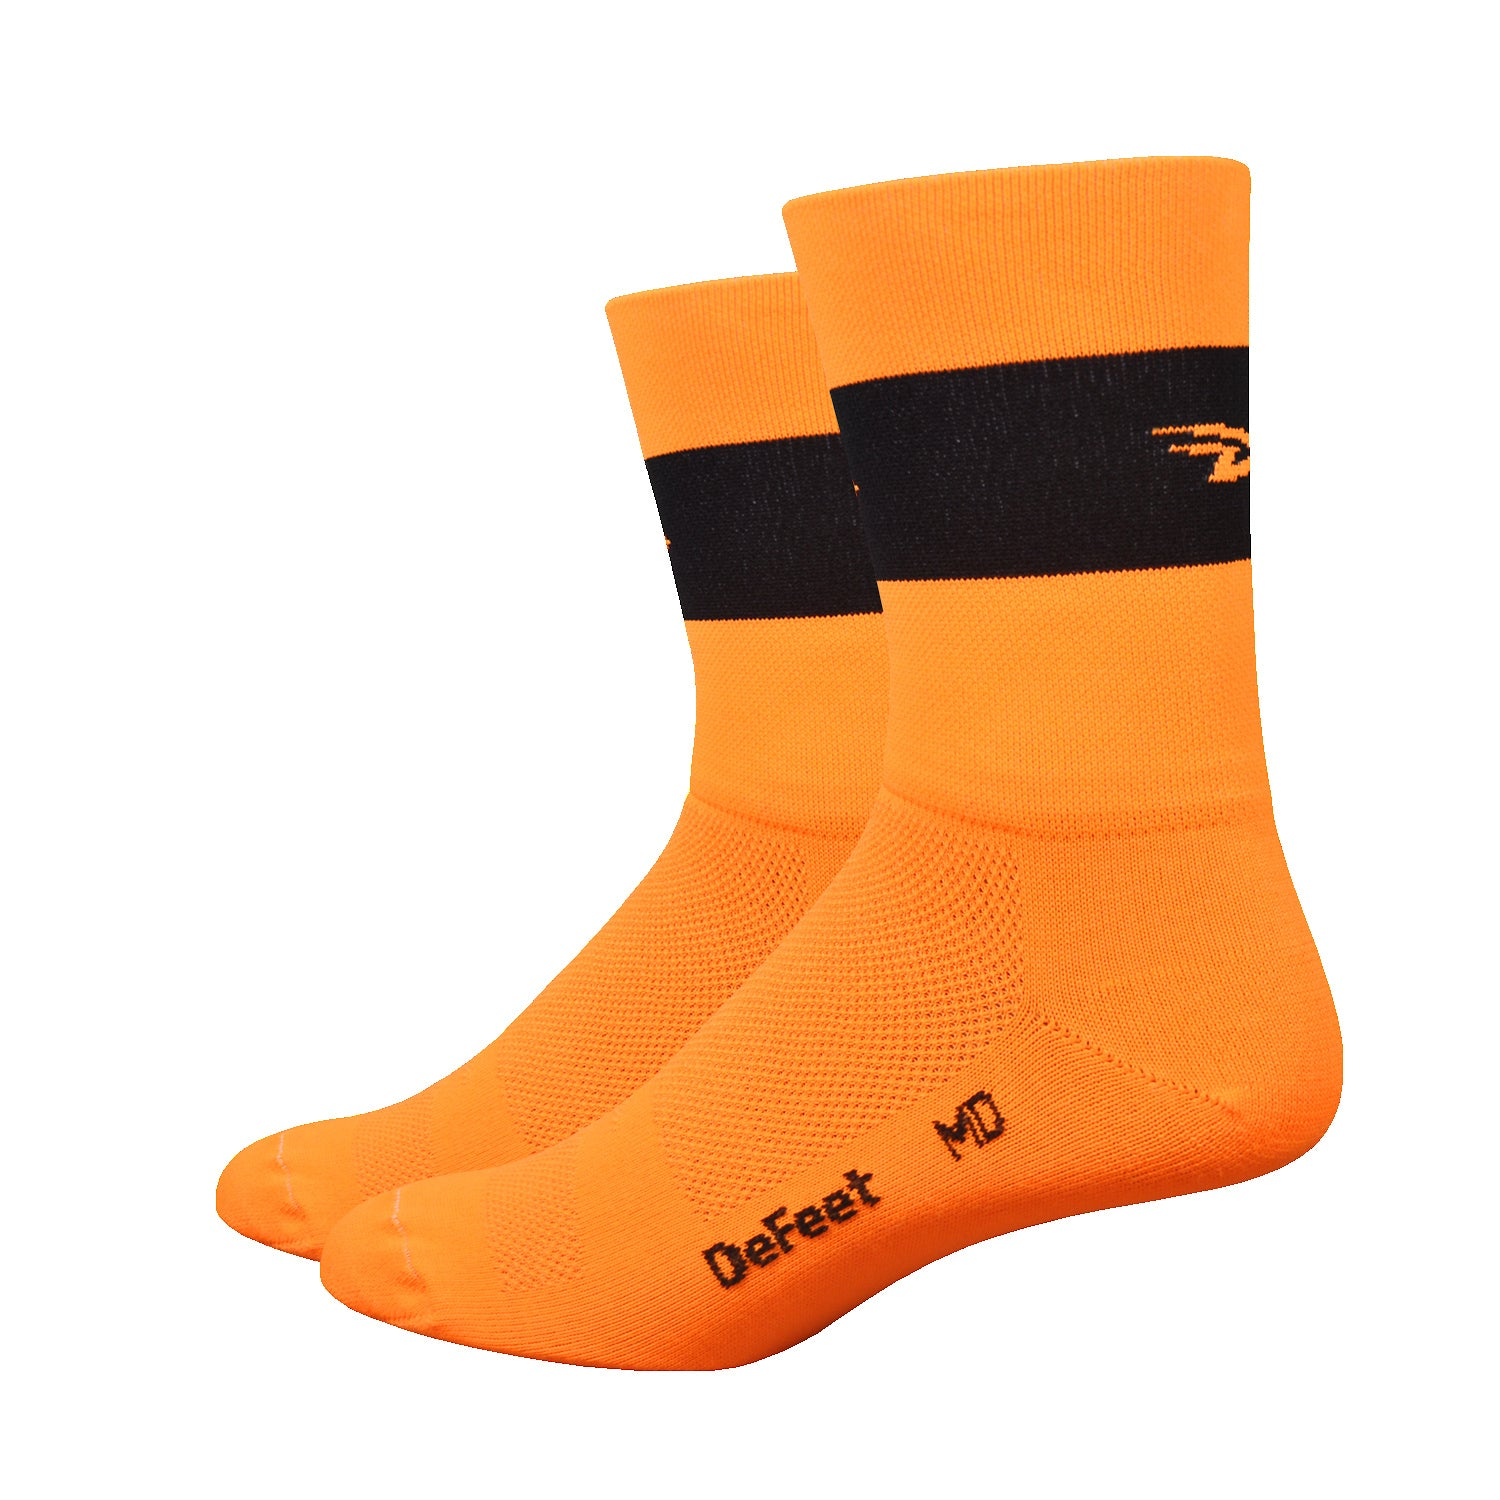 "Aireator 5"" Team DeFeet (Neon Orange w/Black Stripe)"